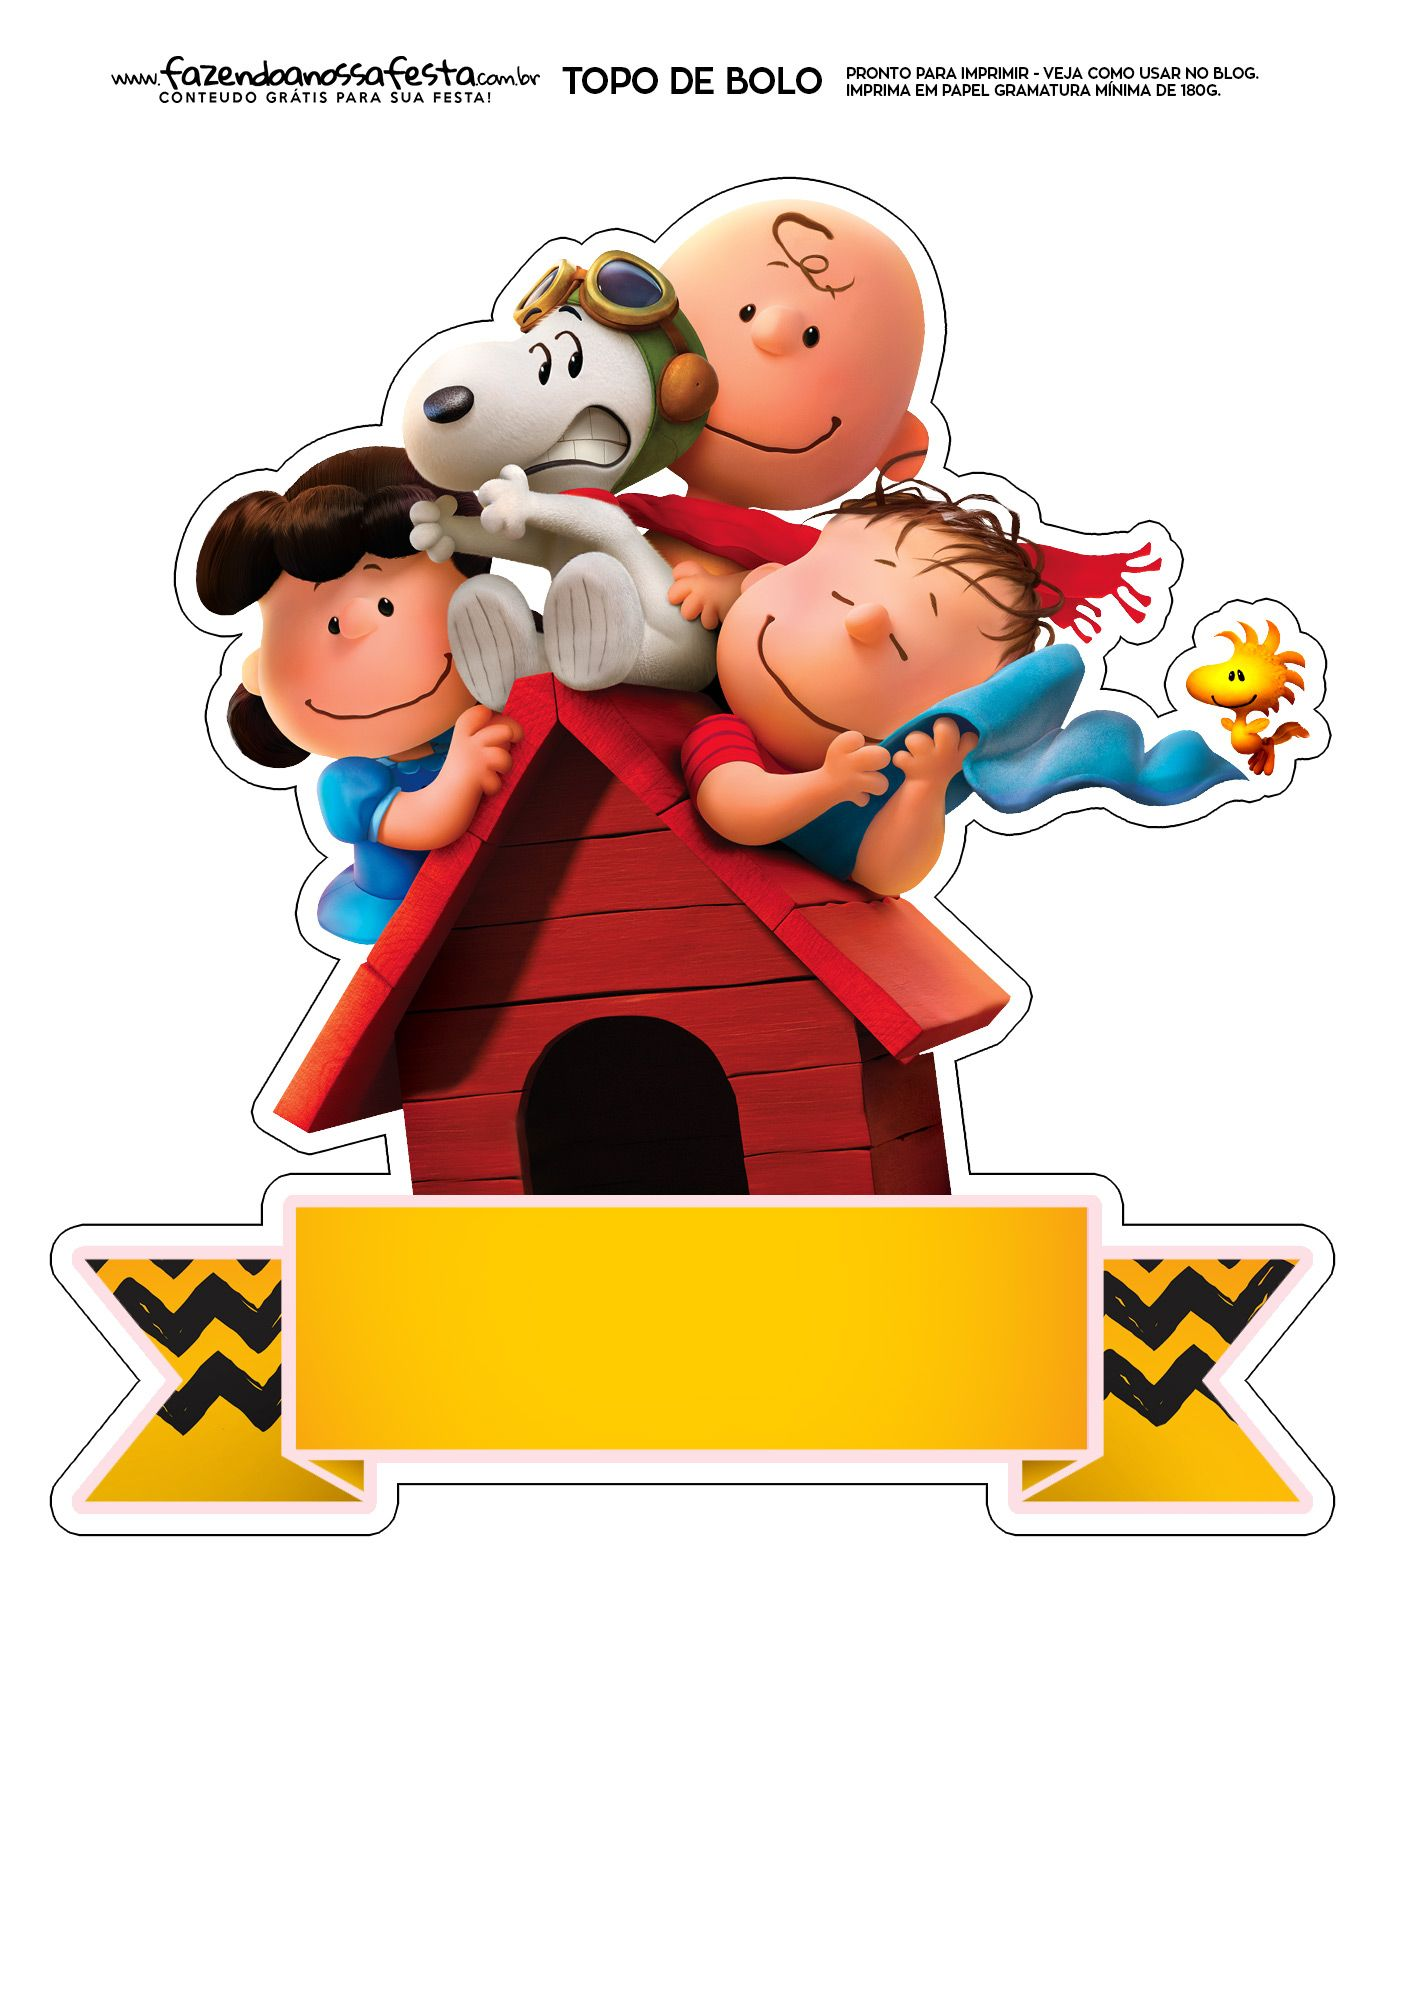 Pin by Charmaine Niemand on Snoopy & Peanut party | Pinterest ...